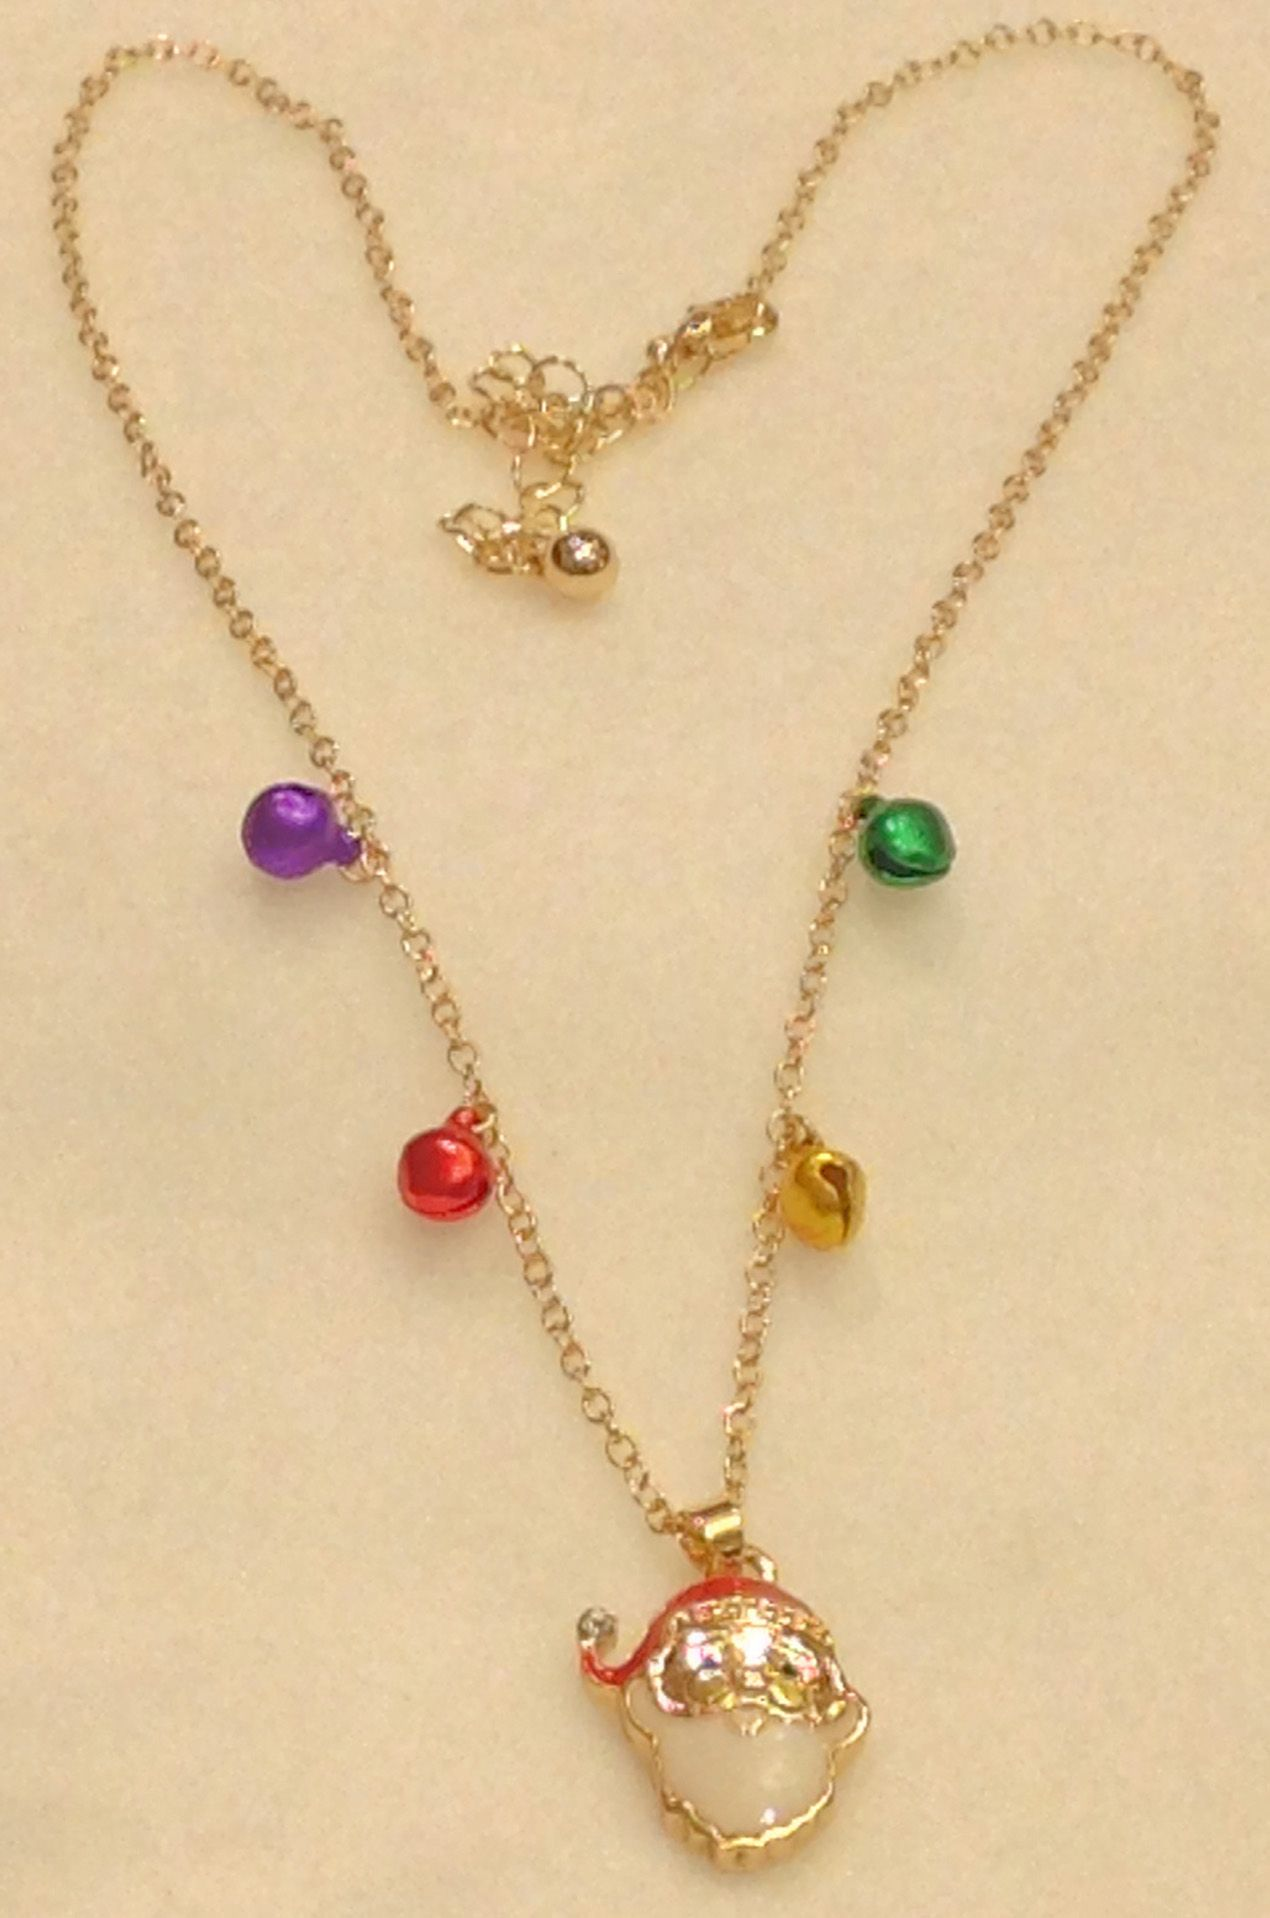 Christmas Santa Claus Jingle Bell Chain Necklace Gold Tone - Antique & Collectible Exchange ...